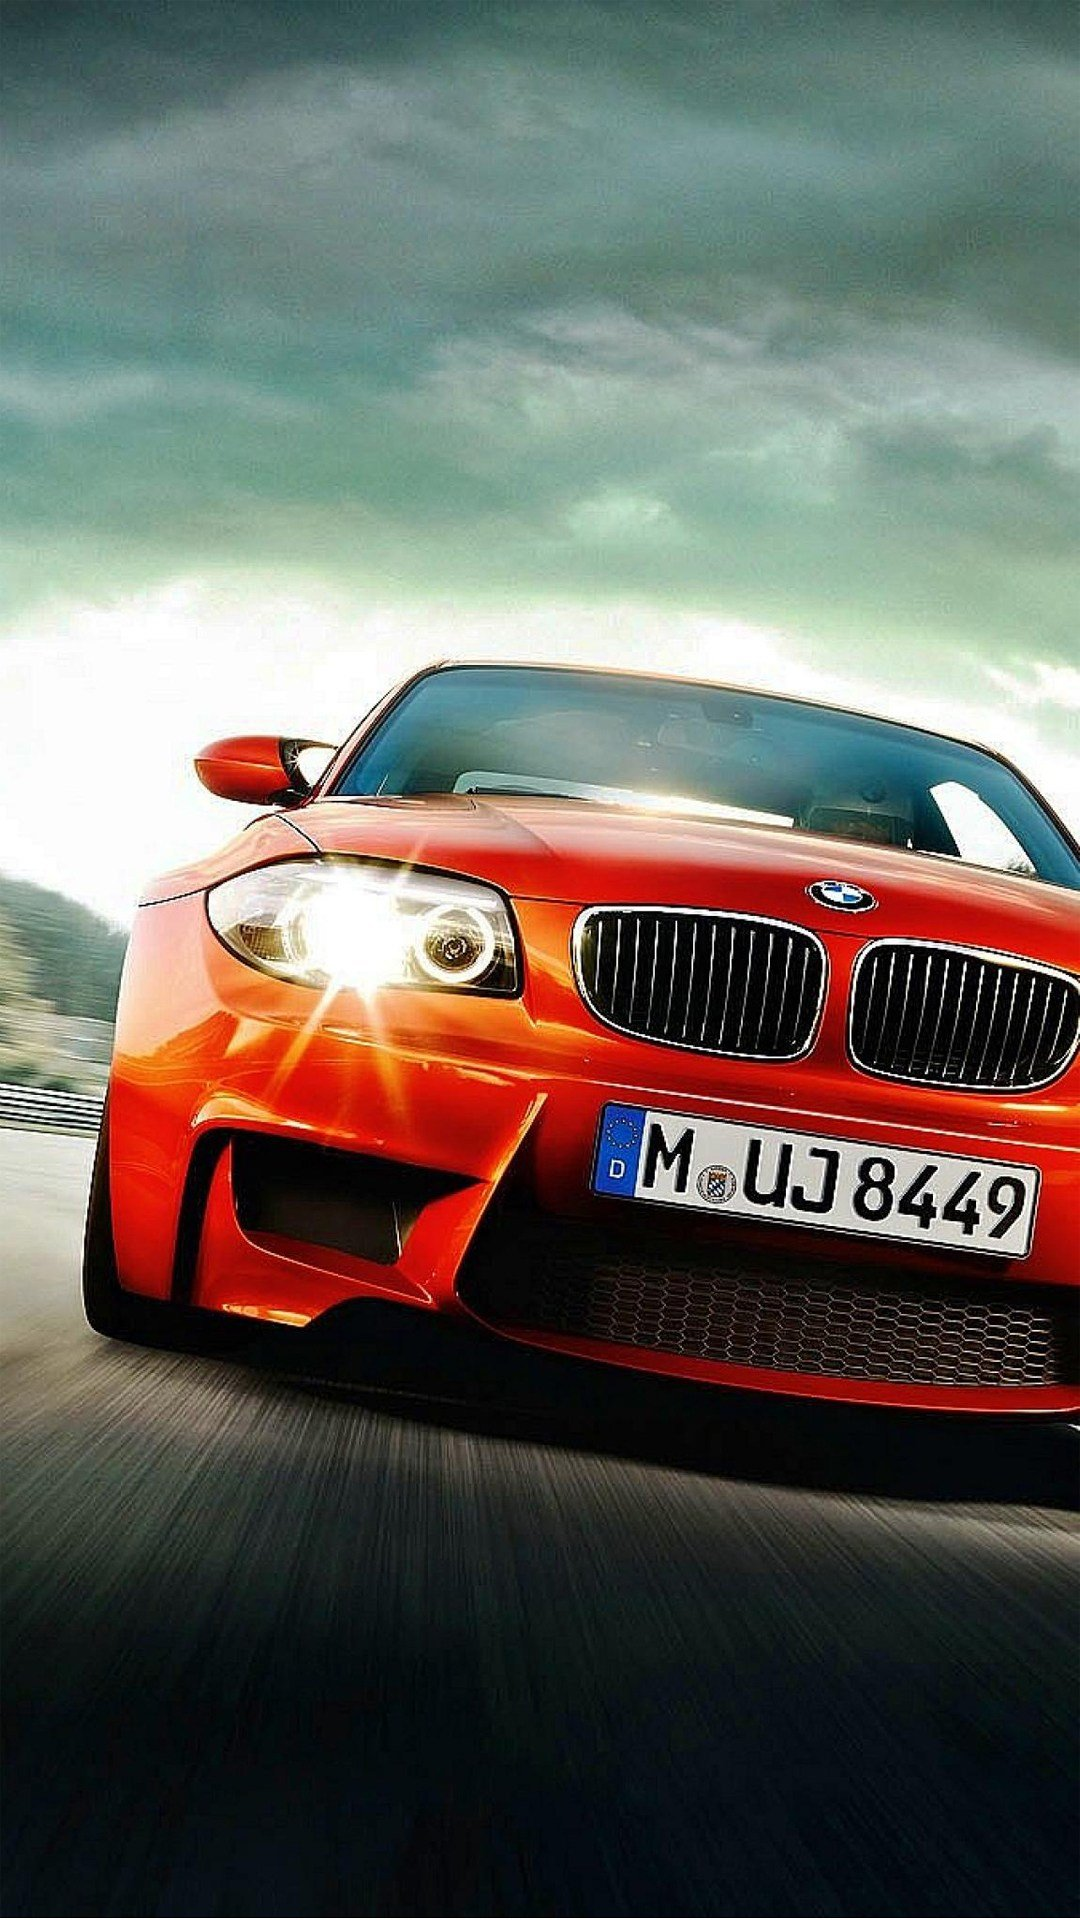 Latest Bmw M3 Speed Car Android Wallpaper Free Download